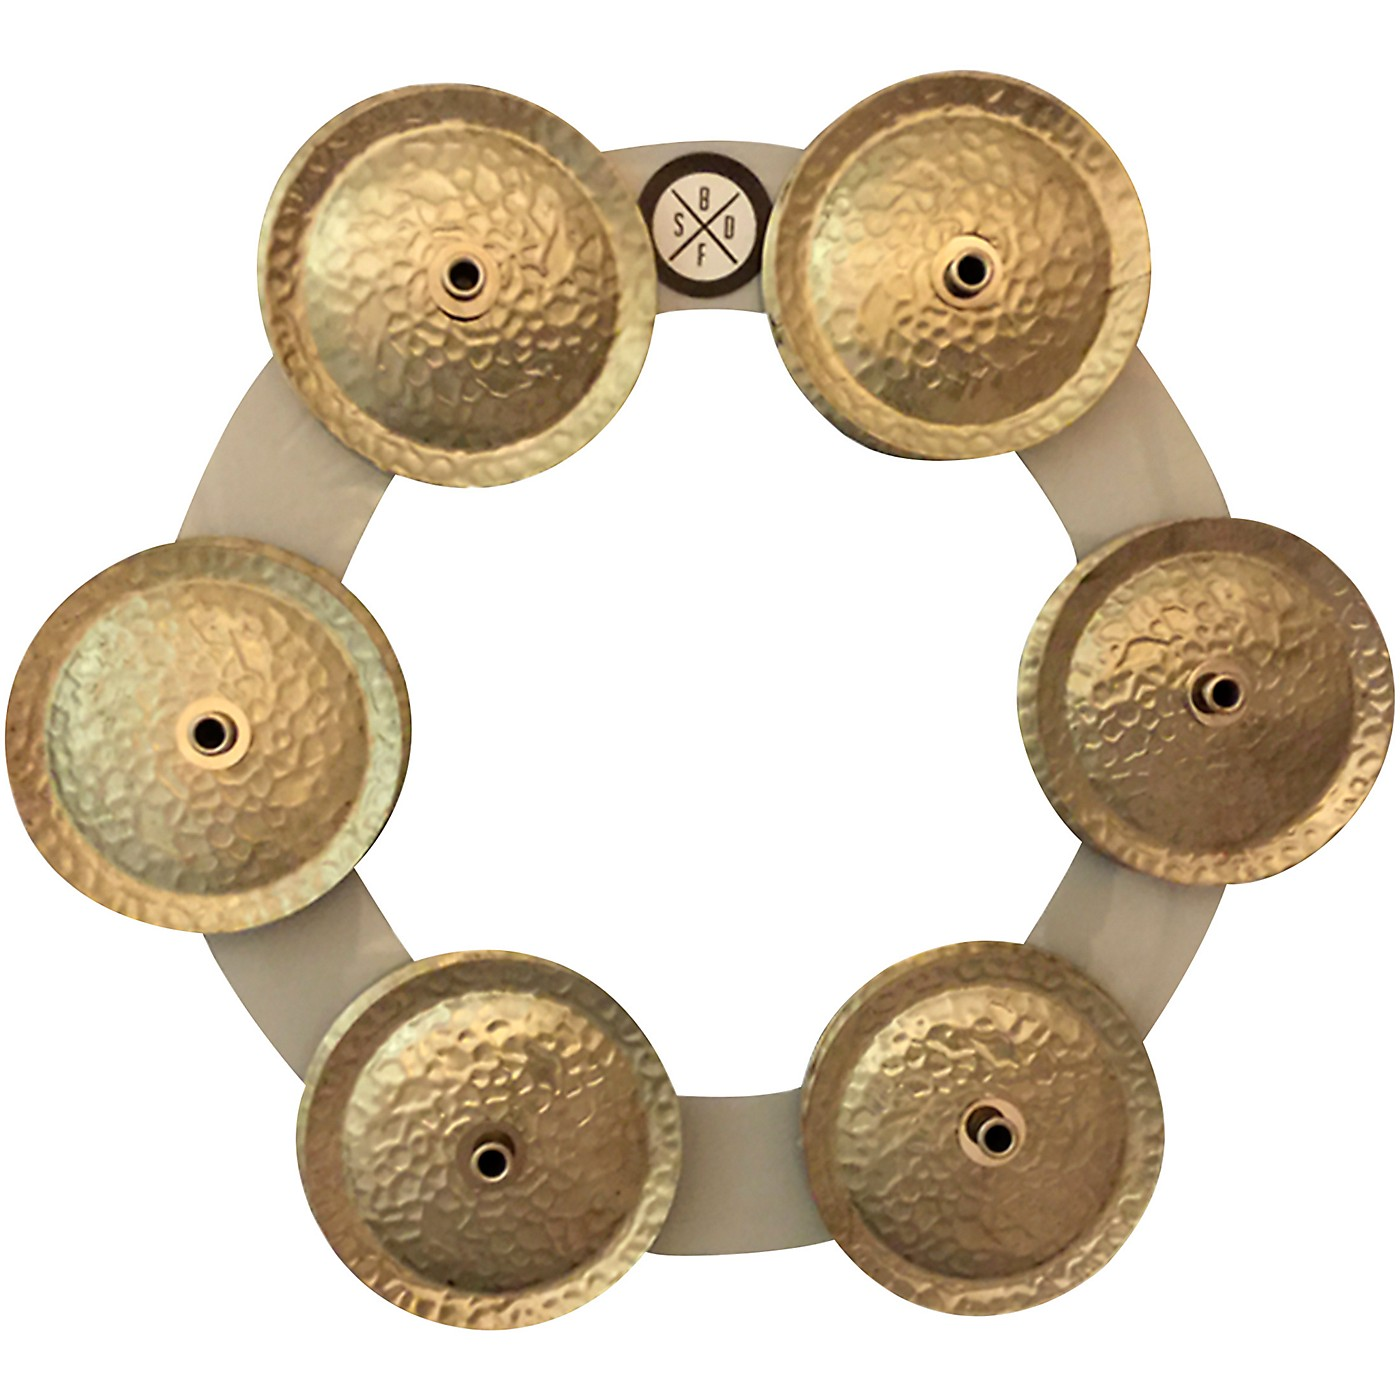 Big Fat Snare Drum Bling Ring - White Copper thumbnail